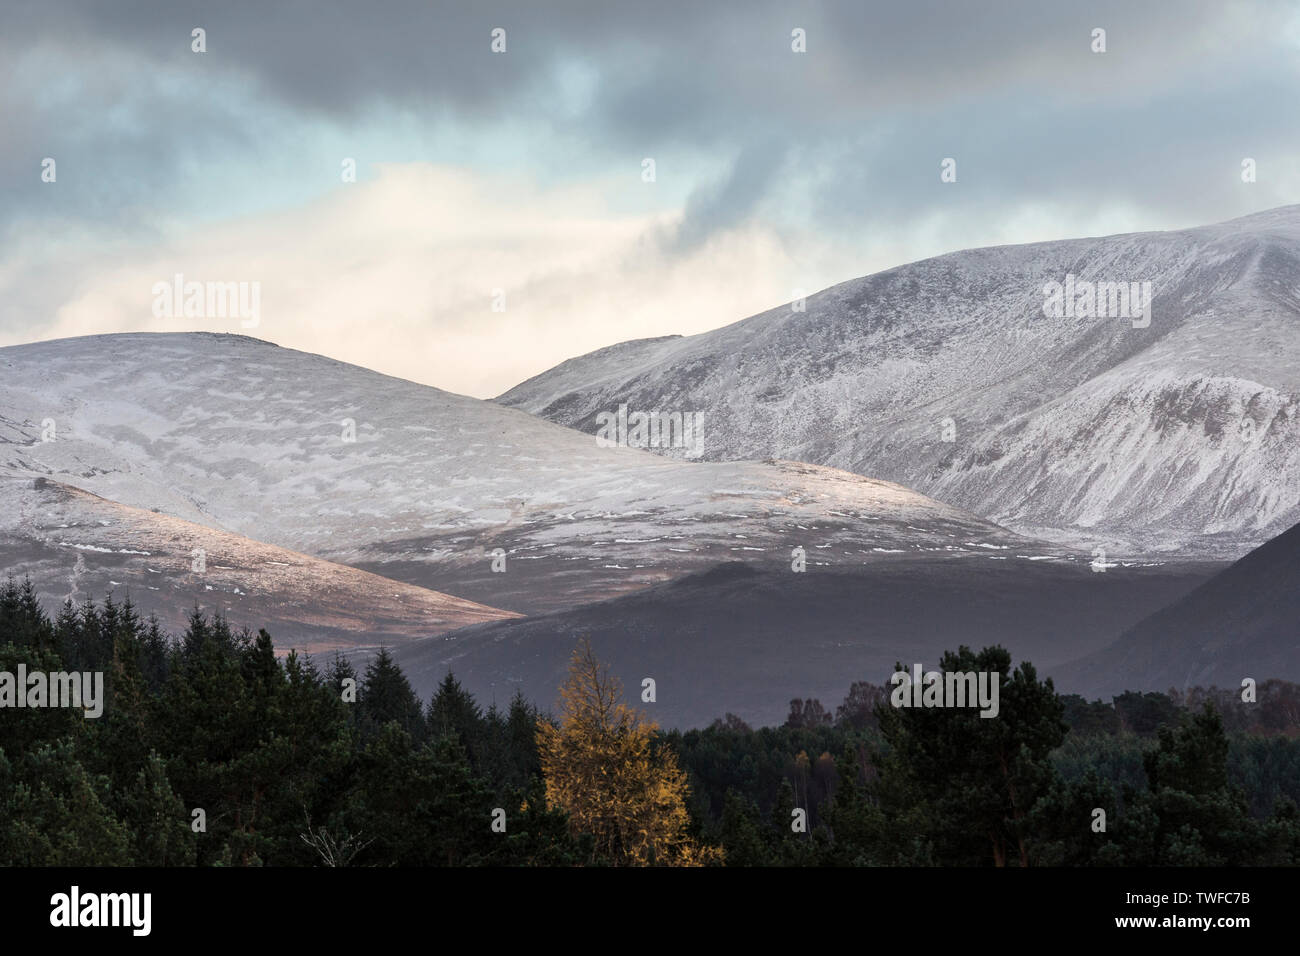 Cairngorms and Lairig ghru in the Highlands of Scotland. - Stock Image